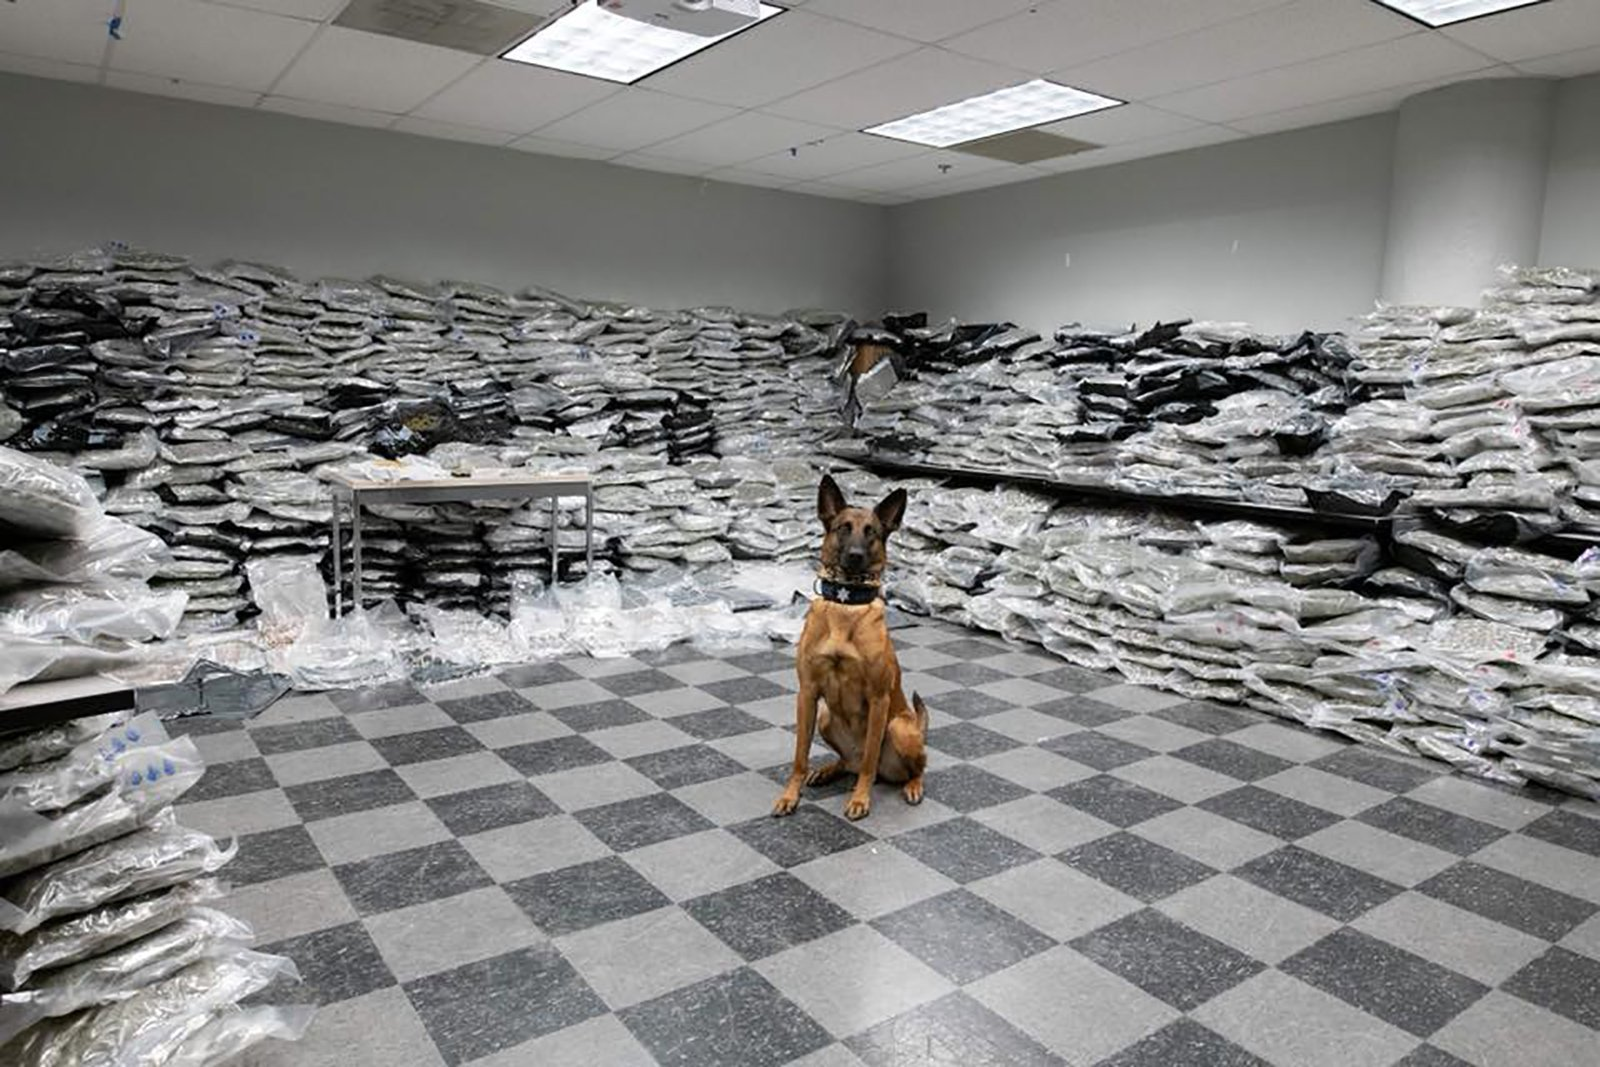 Chicago Police Department officials released this photo of a K-9 that officers seize over $10 million worth of marijuana on Thursday.